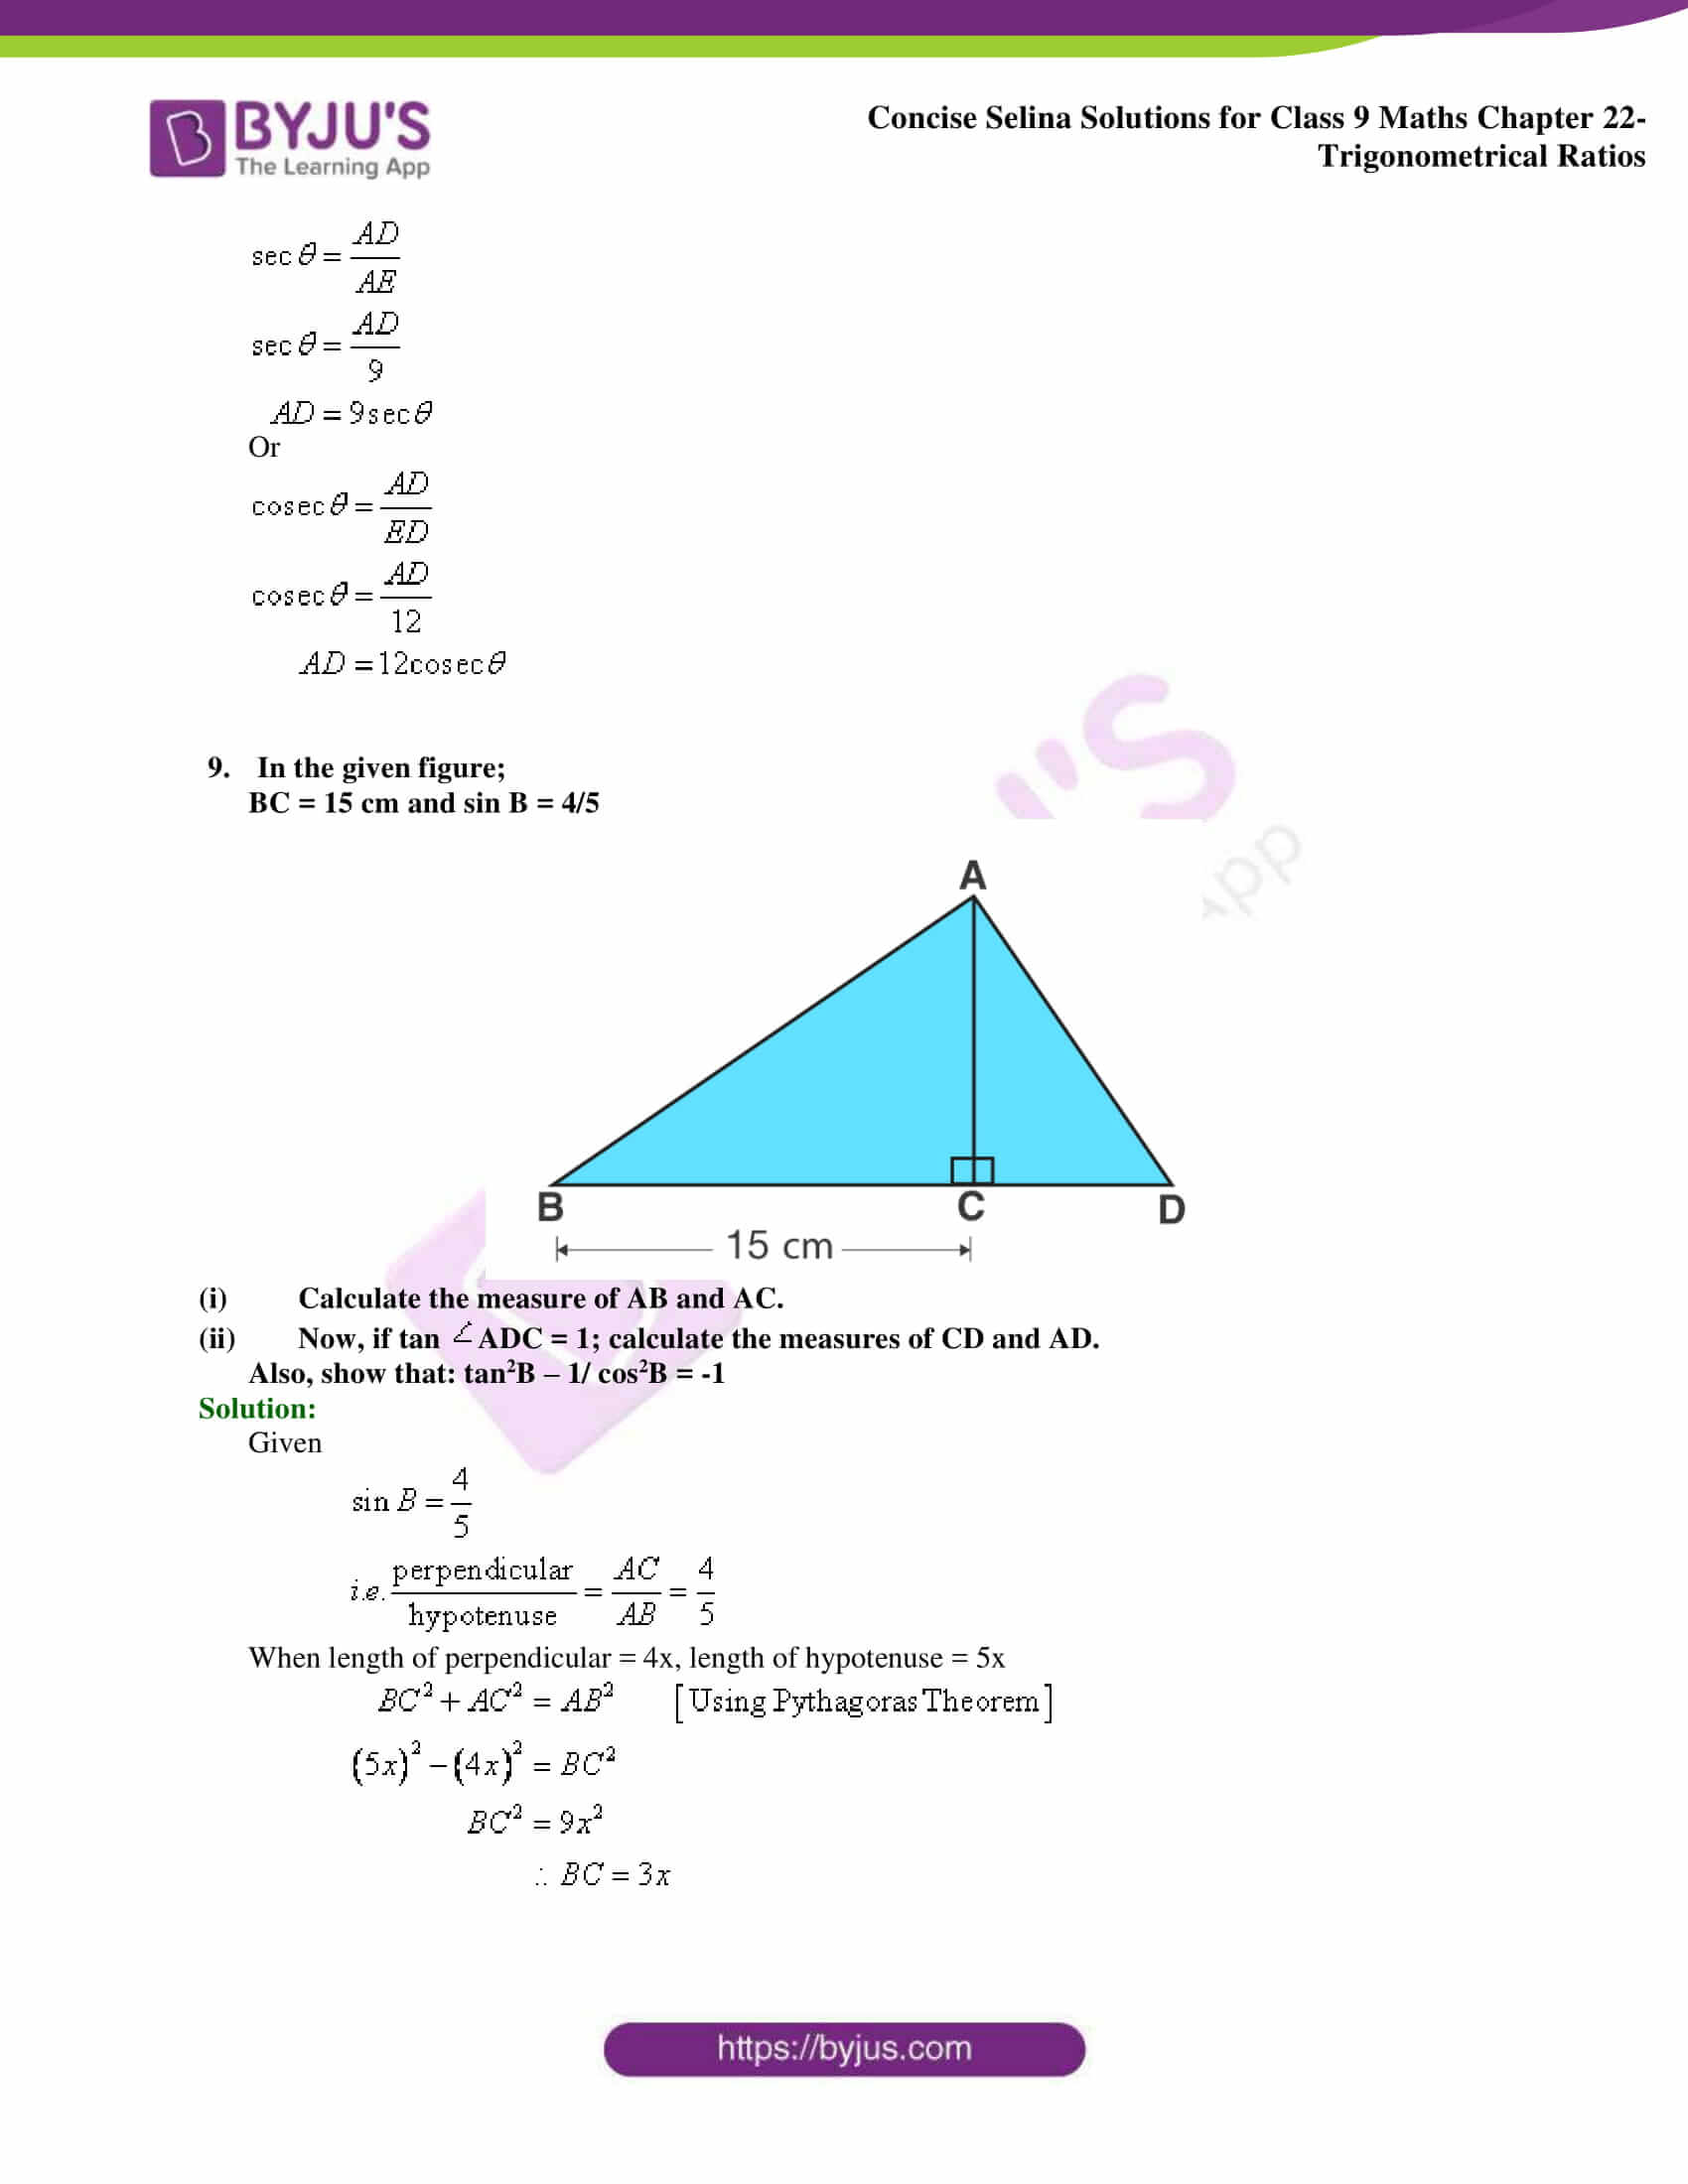 Concise Selina Solutions Class 9 Maths Chapter 22 Trigonometrical Ratios part 31